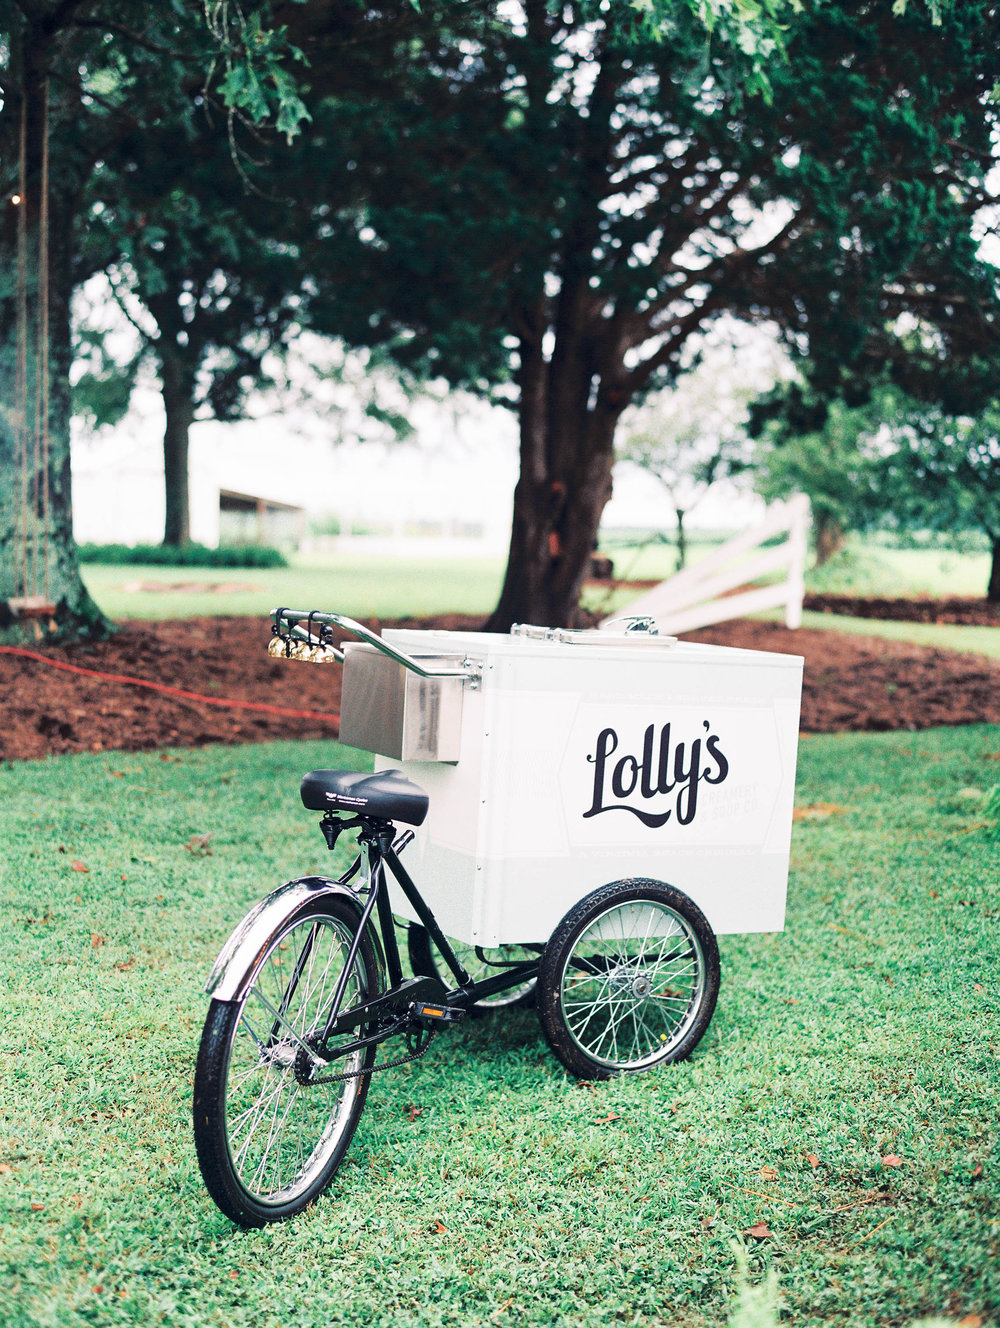 the joy bike - Look for us to be hitting the streets in your favorite beach neighborhood (Sandbridge, Chic's Beach, and the North End to name a few)! More info to come!